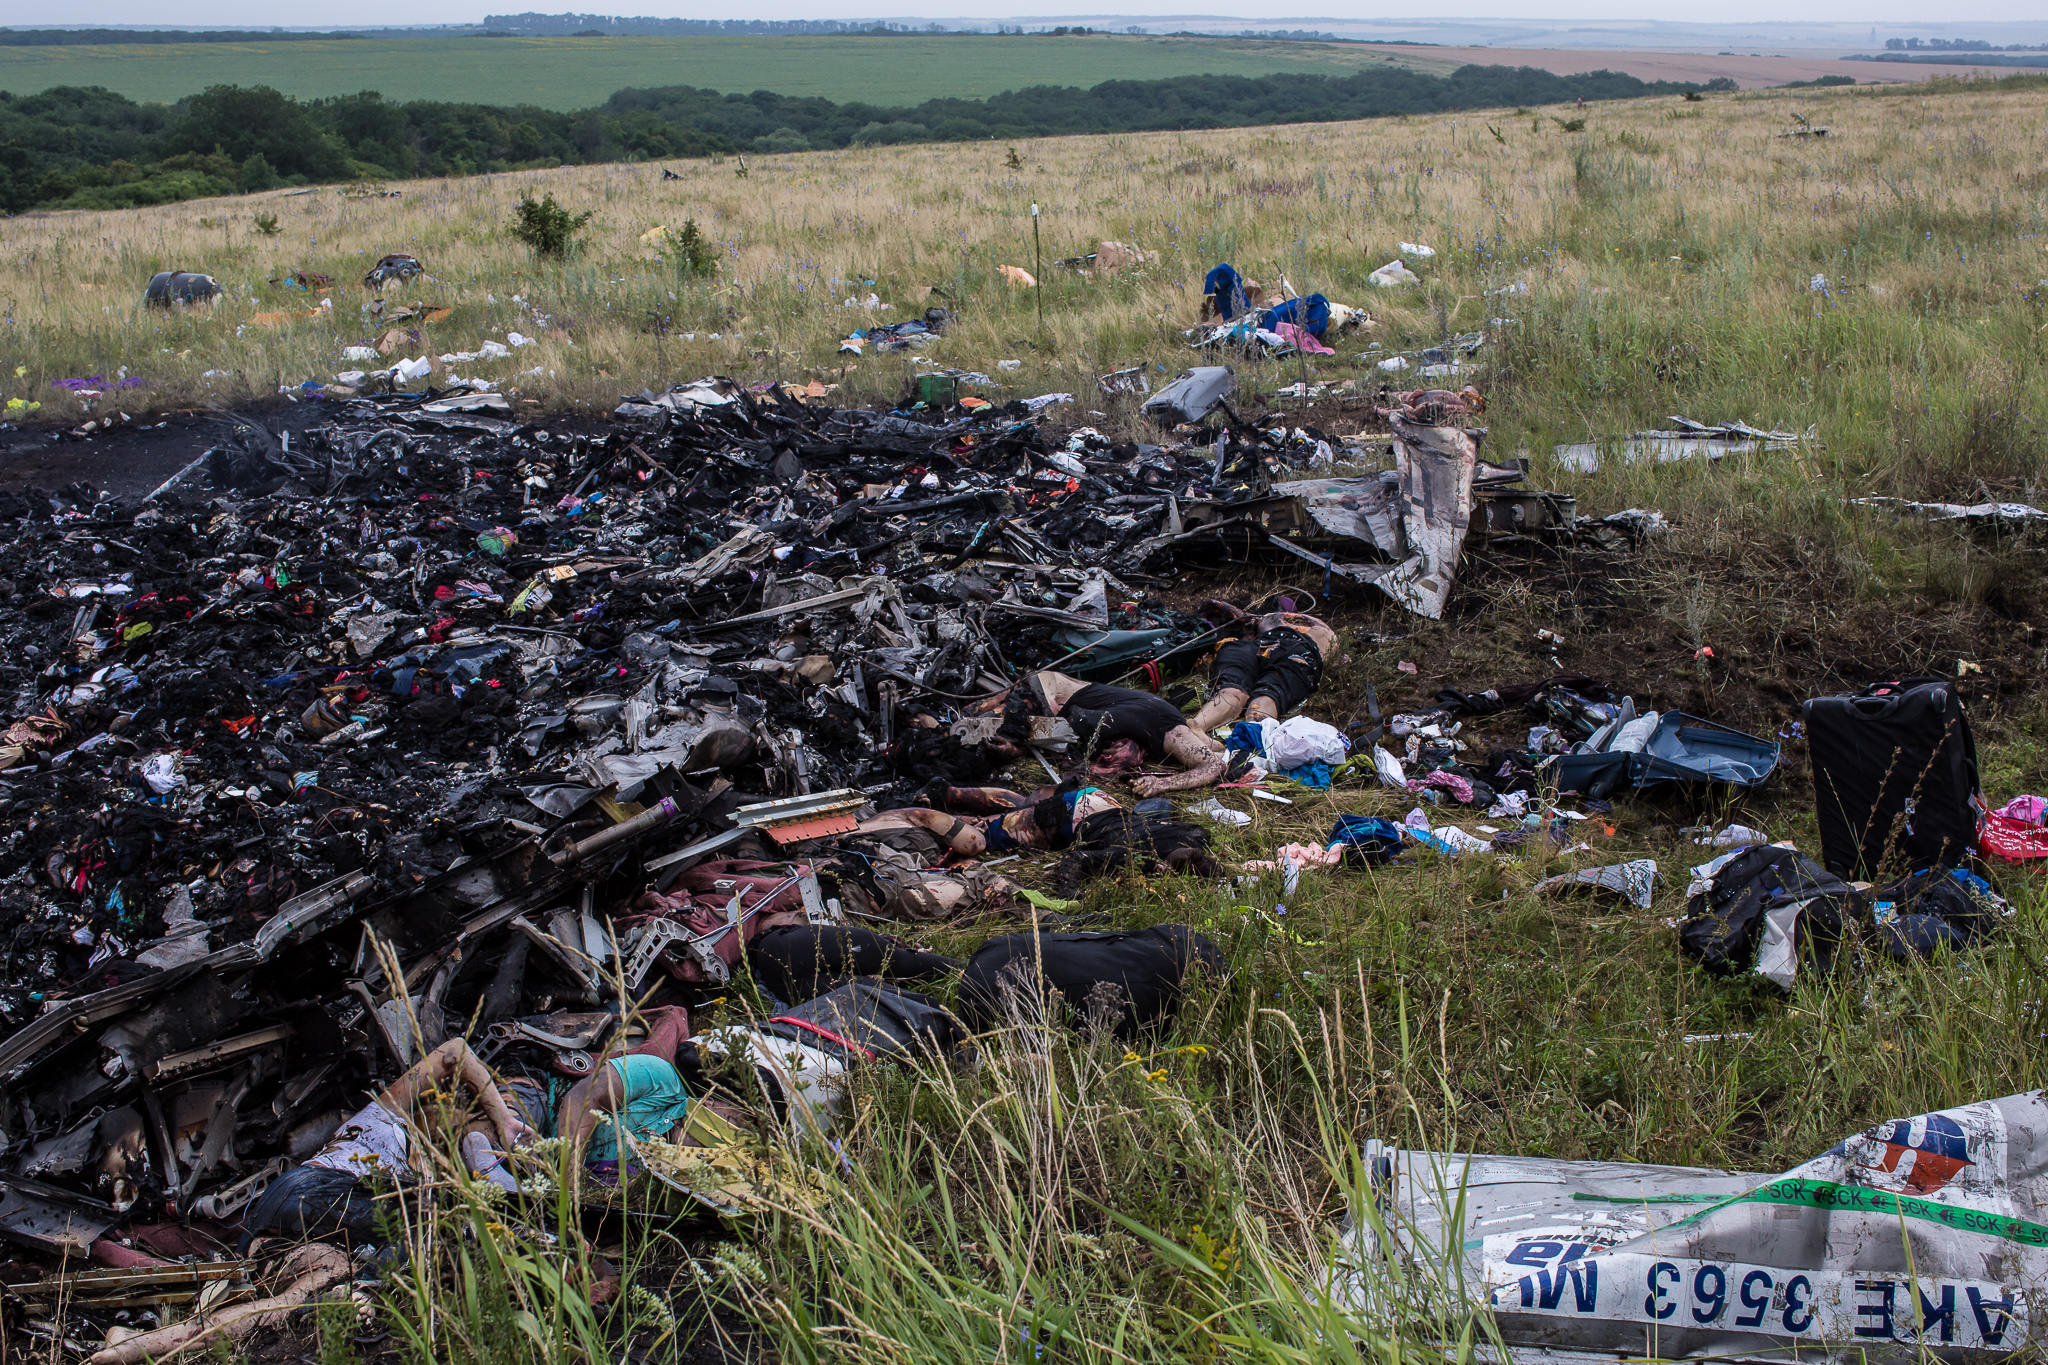 The bodies of victims of the crash of Malaysia Airlines flight MH17 lie among burned wreckage in a field on July 18, 2014 in Grabovo, Ukraine. Air Malaysia flight MH17 travelling from Amsterdam to Kuala Lumpur has crashed on the Ukraine/Russia border near the town of Shaktersk. The Boeing 777 was carrying 298 people.